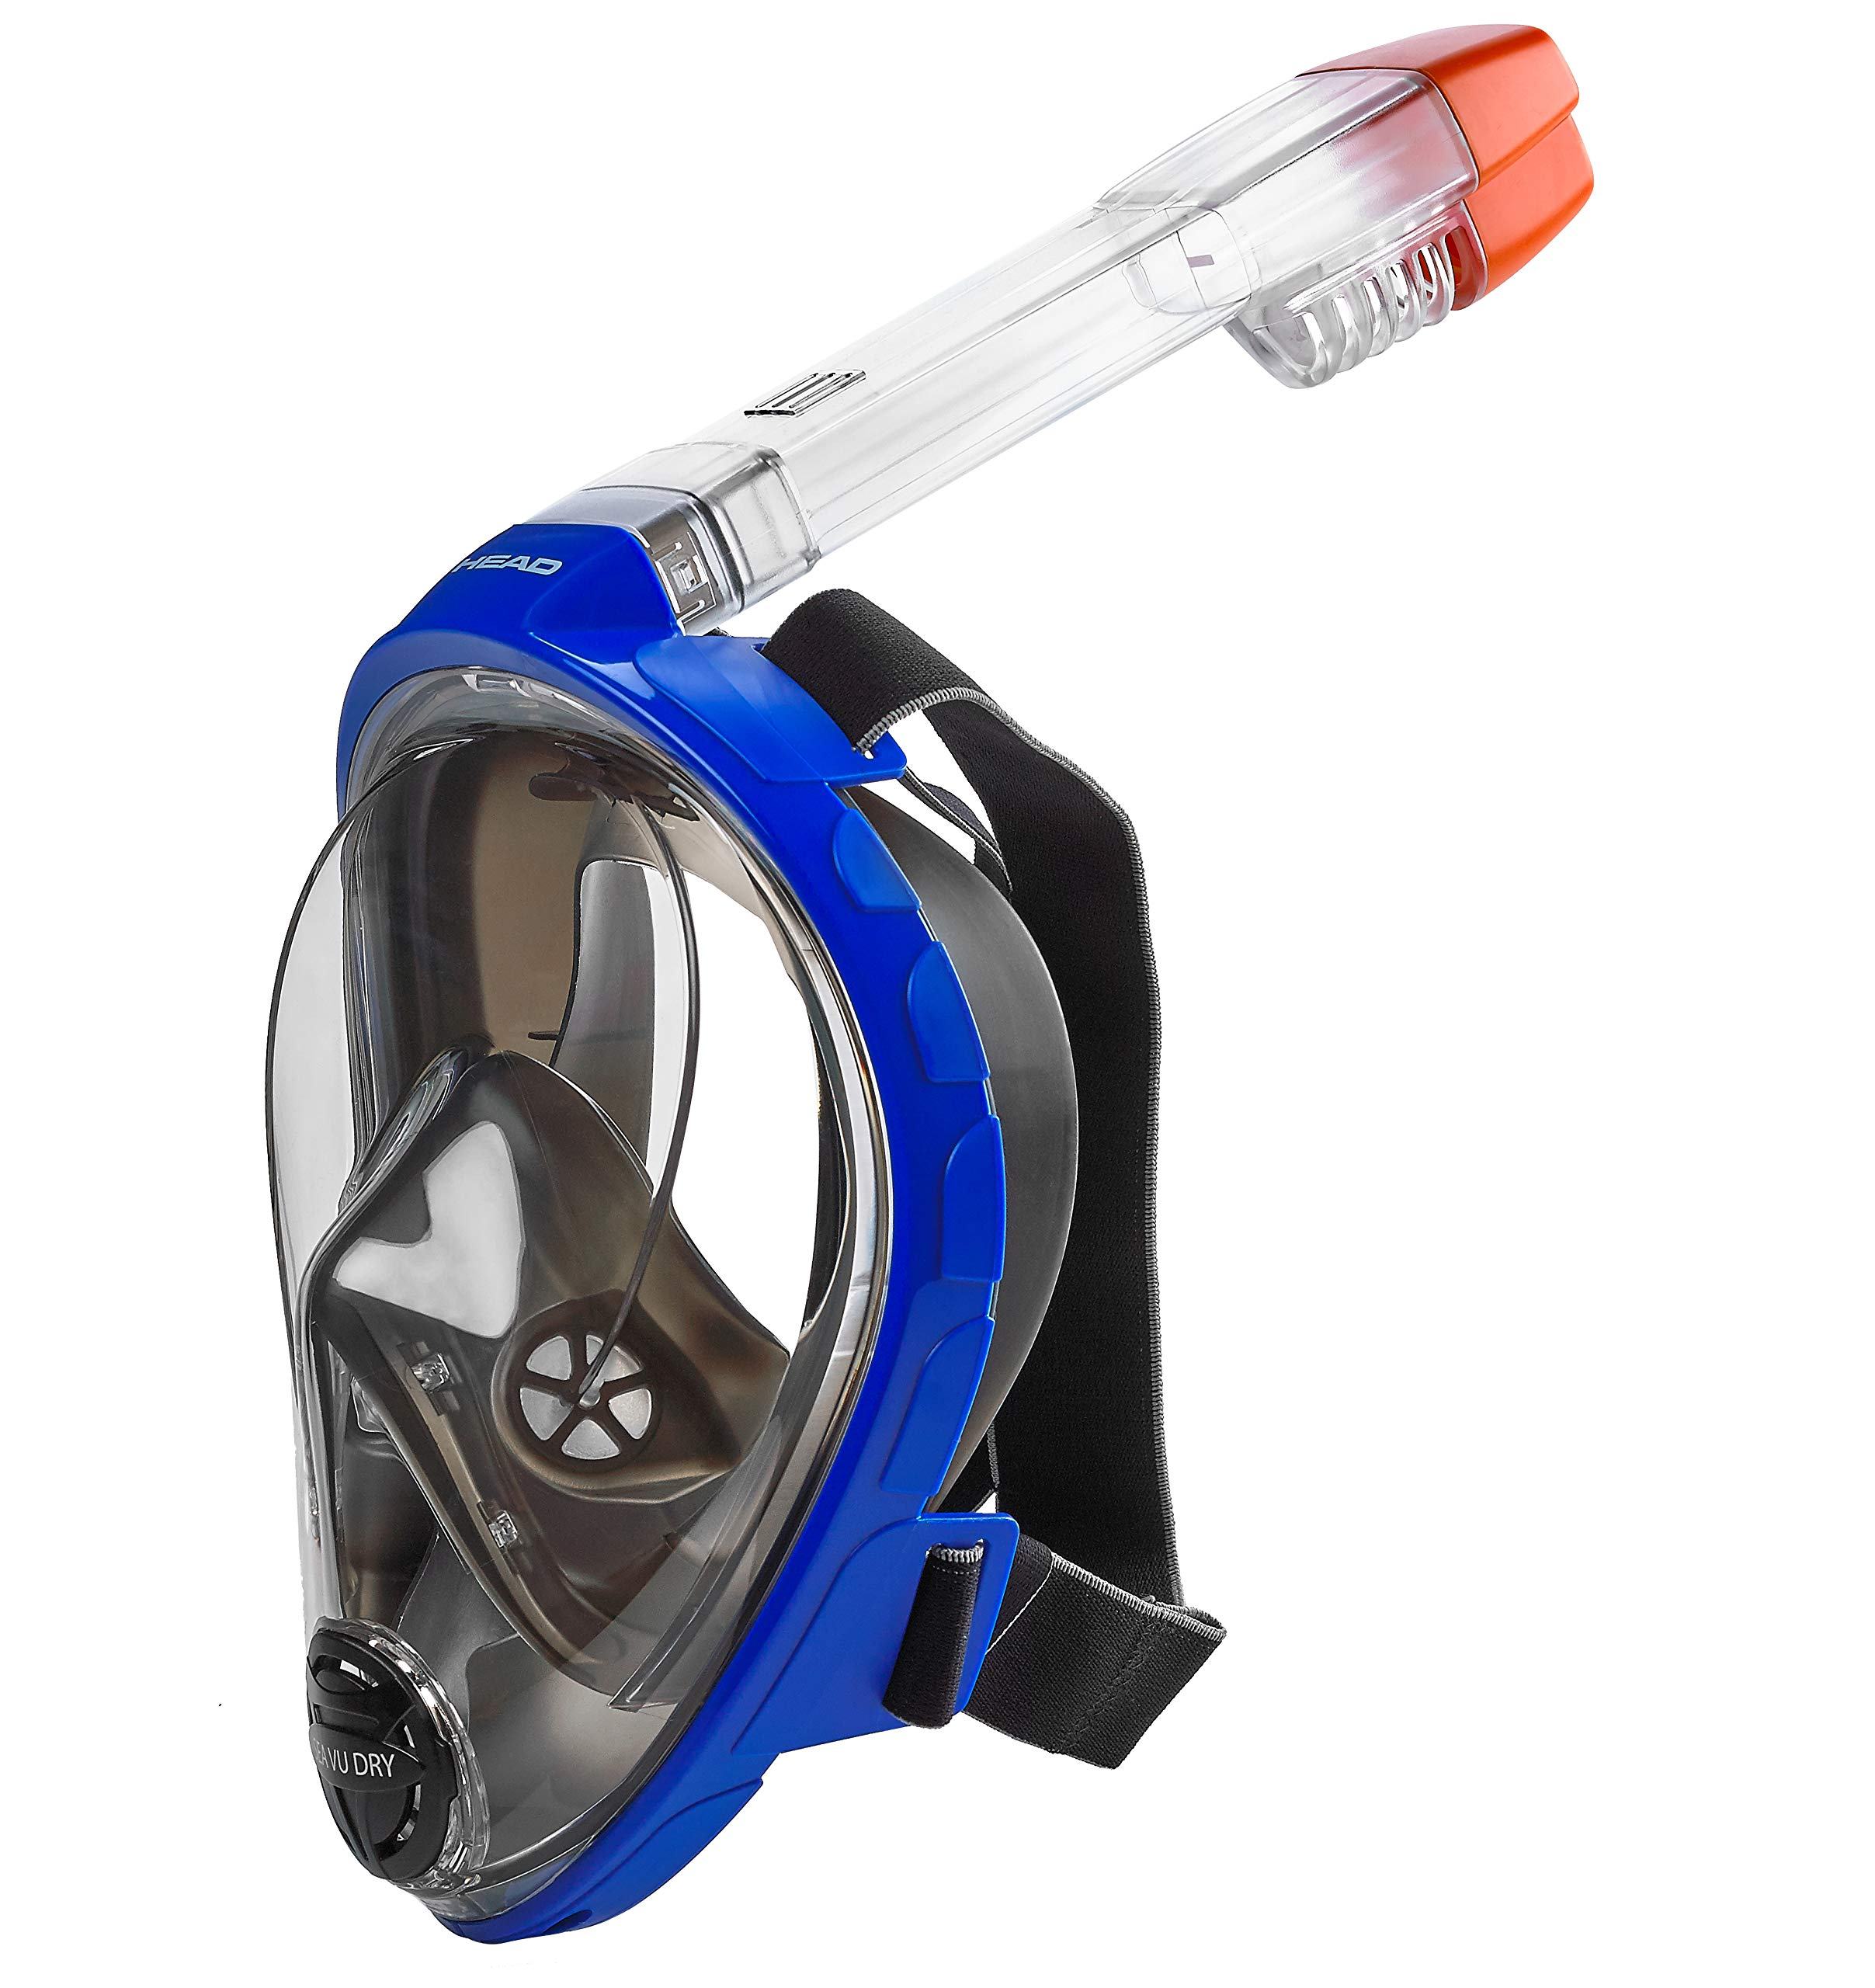 HEAD Sea Vu Dry Full Face Snorkeling Mask, Large/X Large, Blue by HEAD